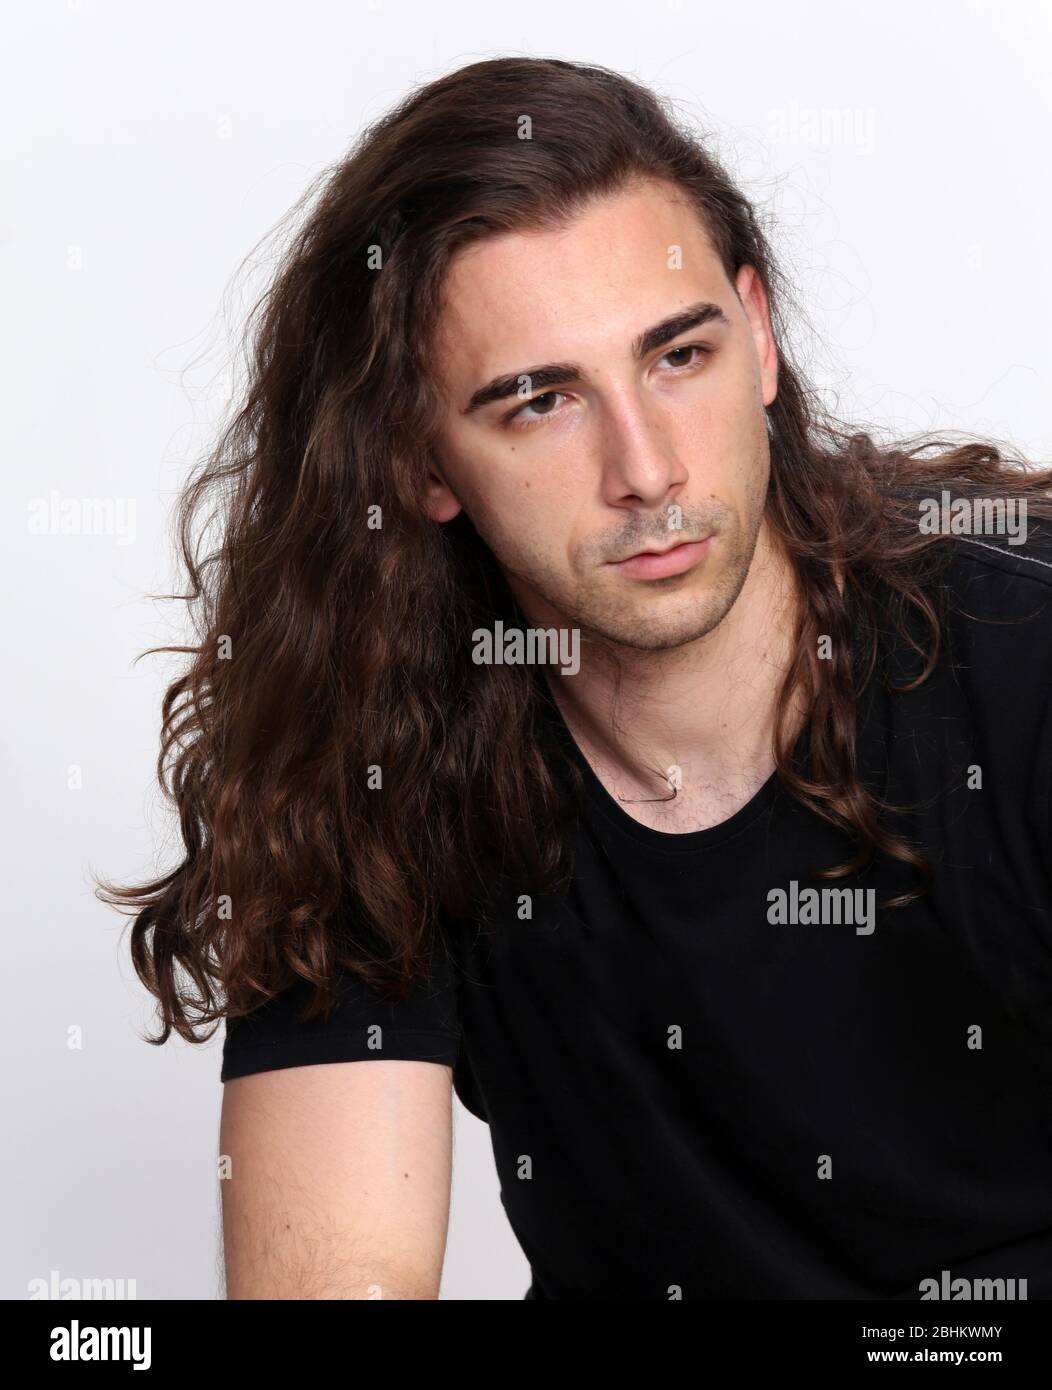 Stylish Male Model With Long Wavy Hair Posing In Studio Trends Style Fashion Concept Stock Photo Alamy